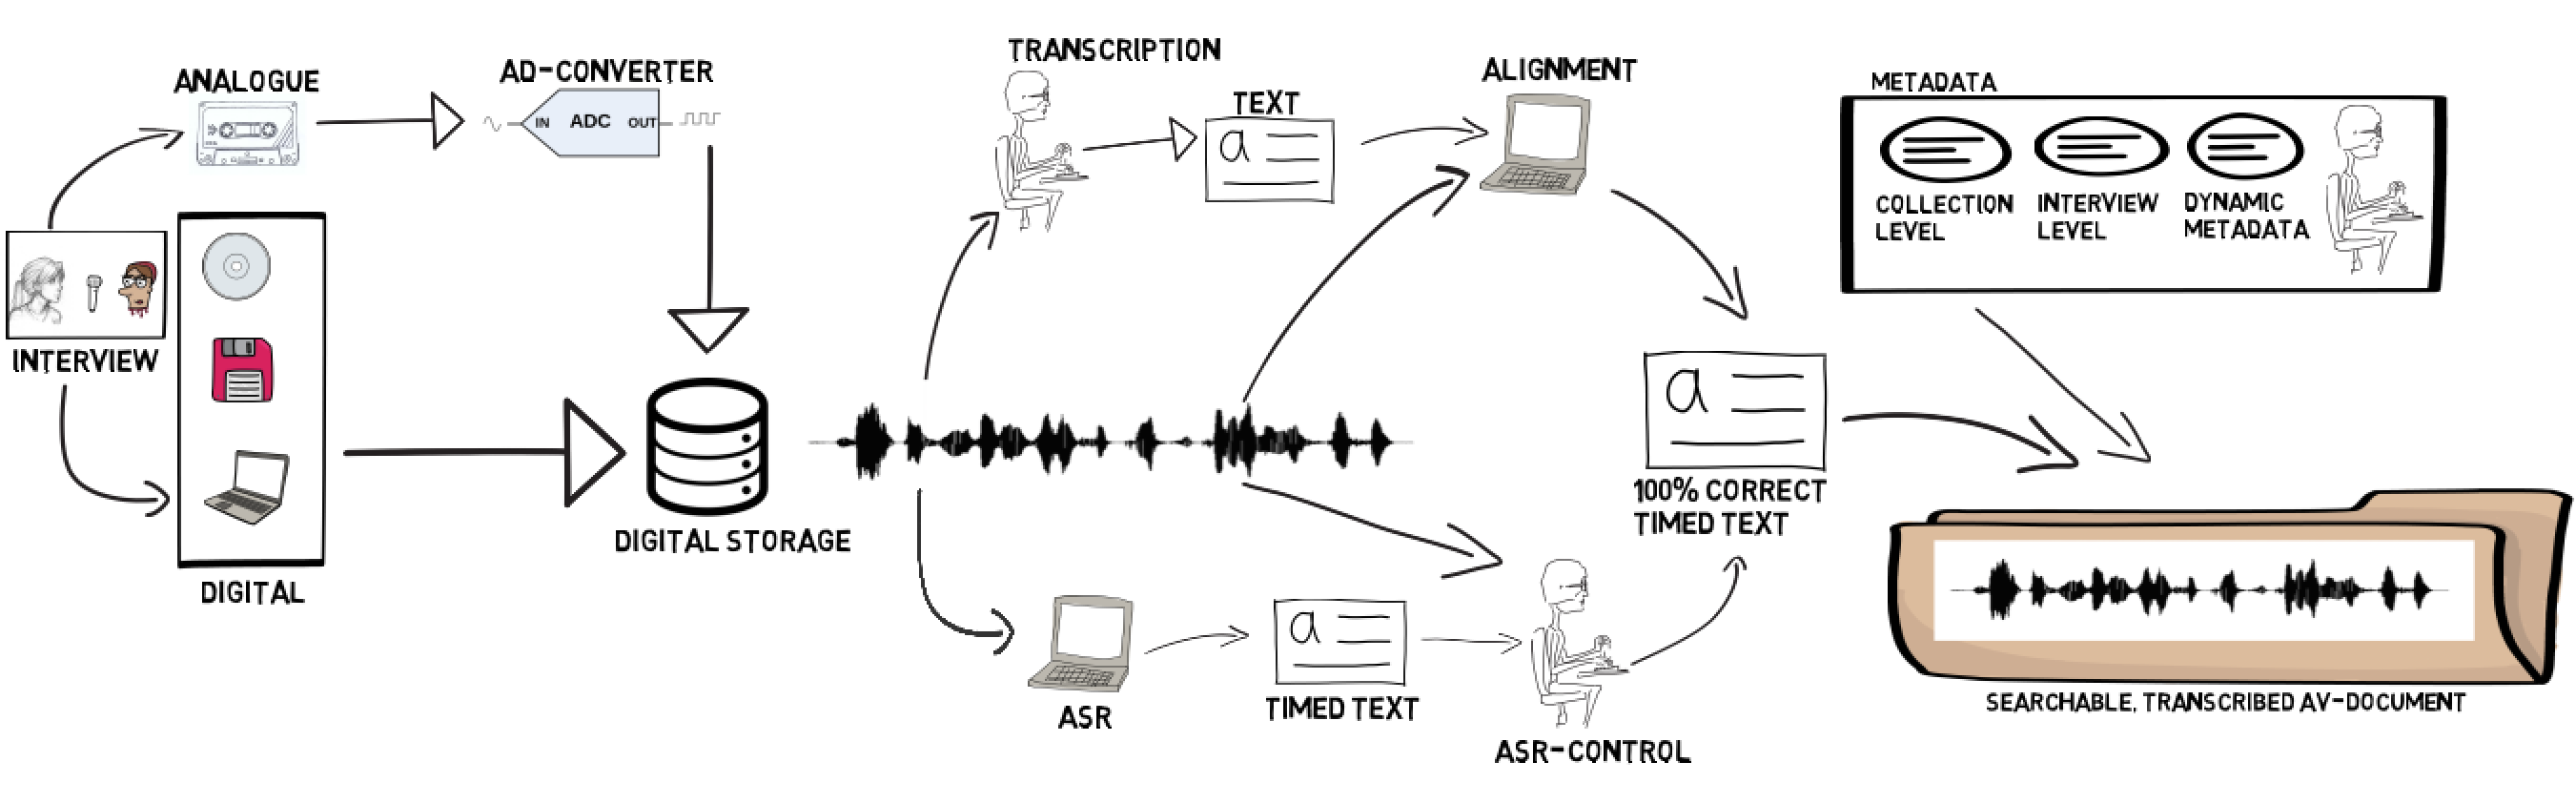 transcription chain